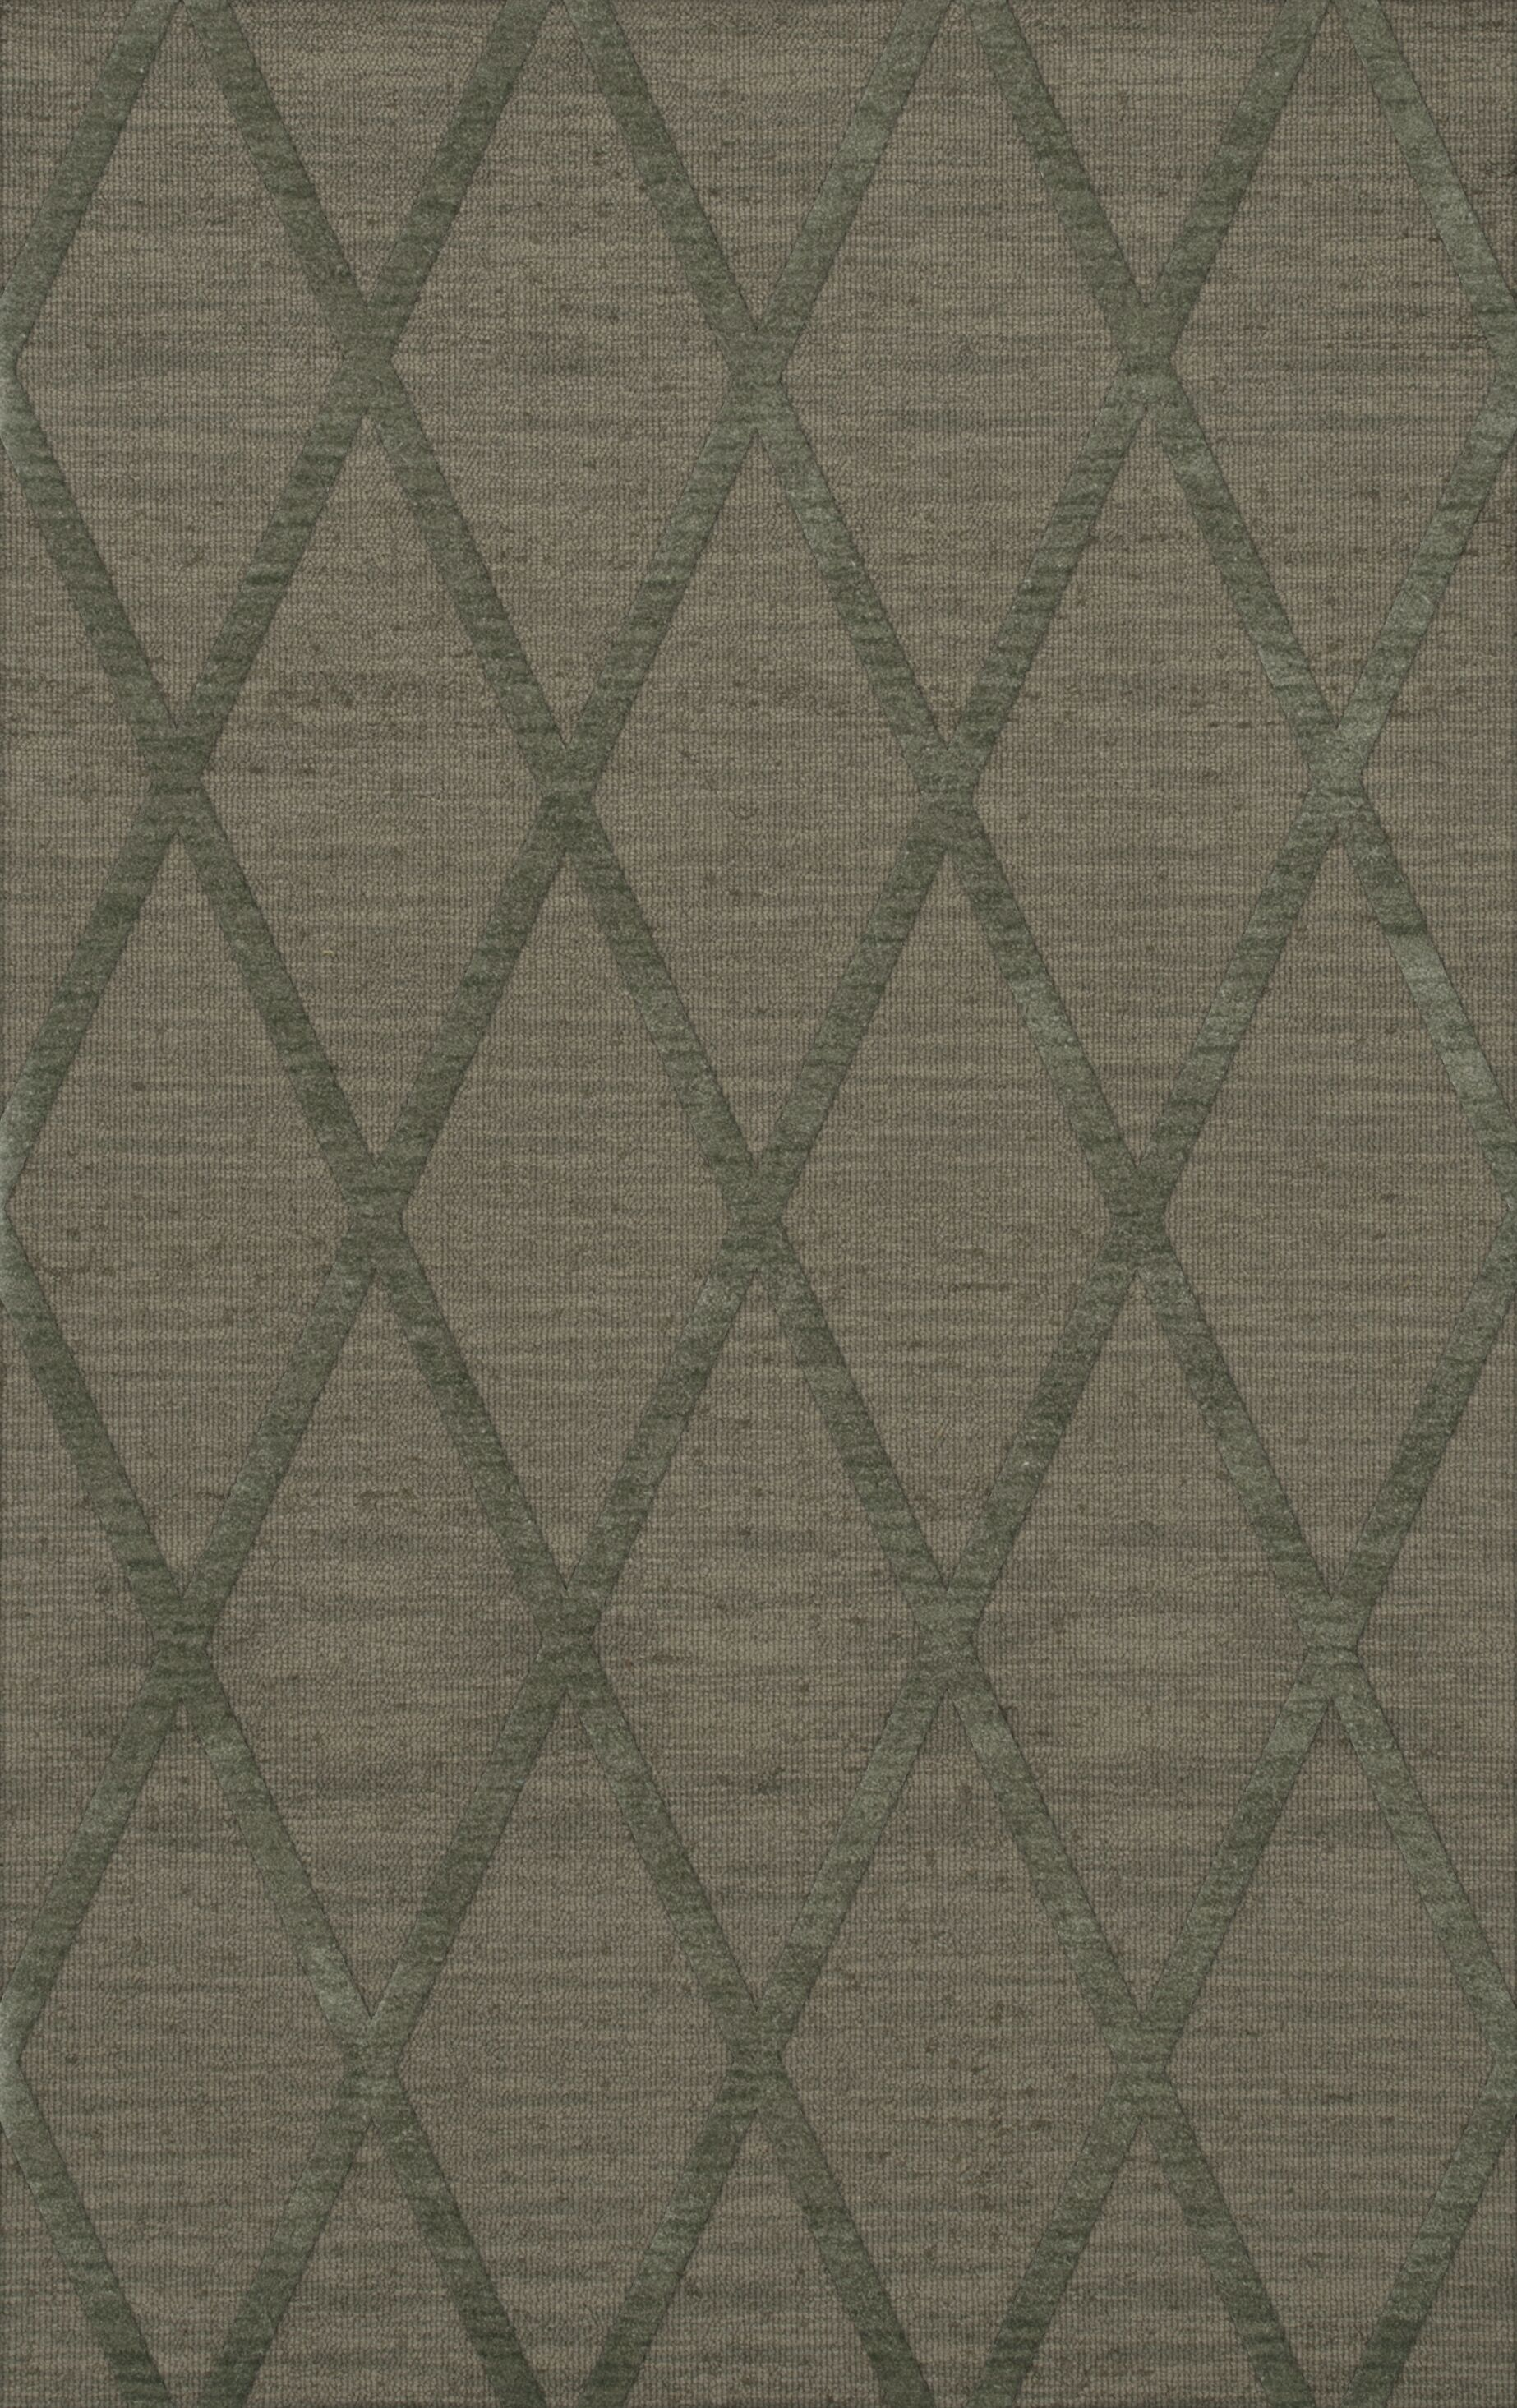 Dover Tufted Wool Aloe Area Rug Rug Size: Rectangle 12' x 15'